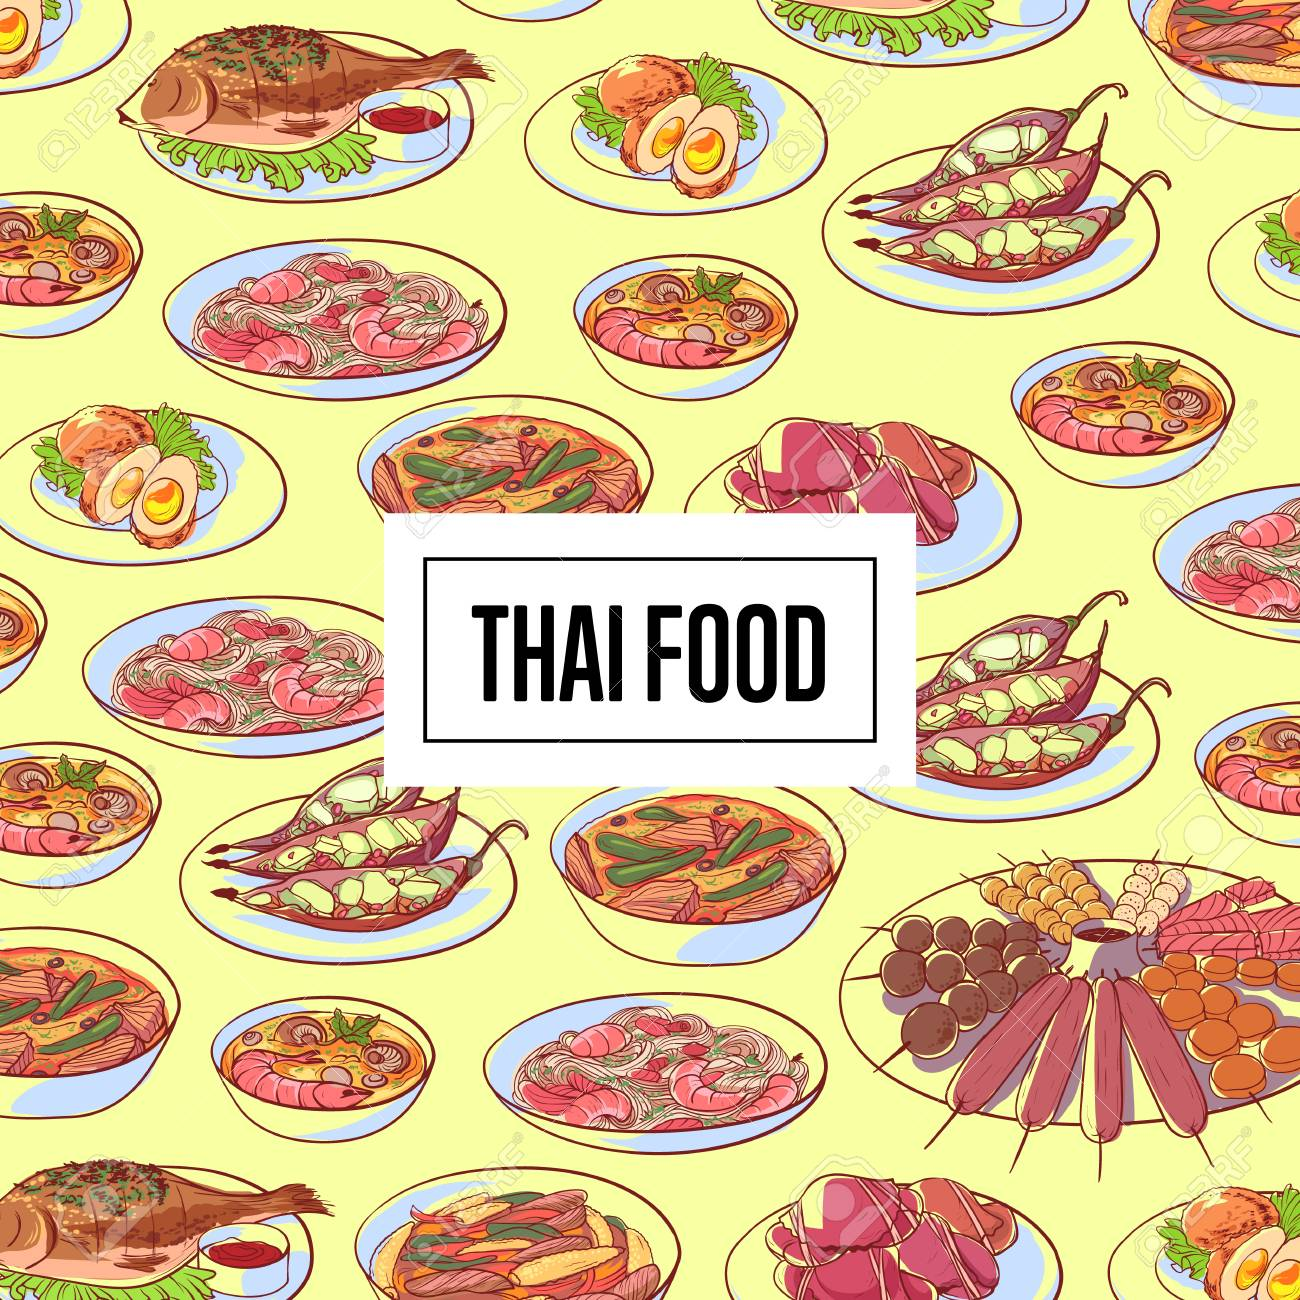 Element Cuisine Thai Food Poster With Asian Cuisine Dishes Restaurant Menu Element